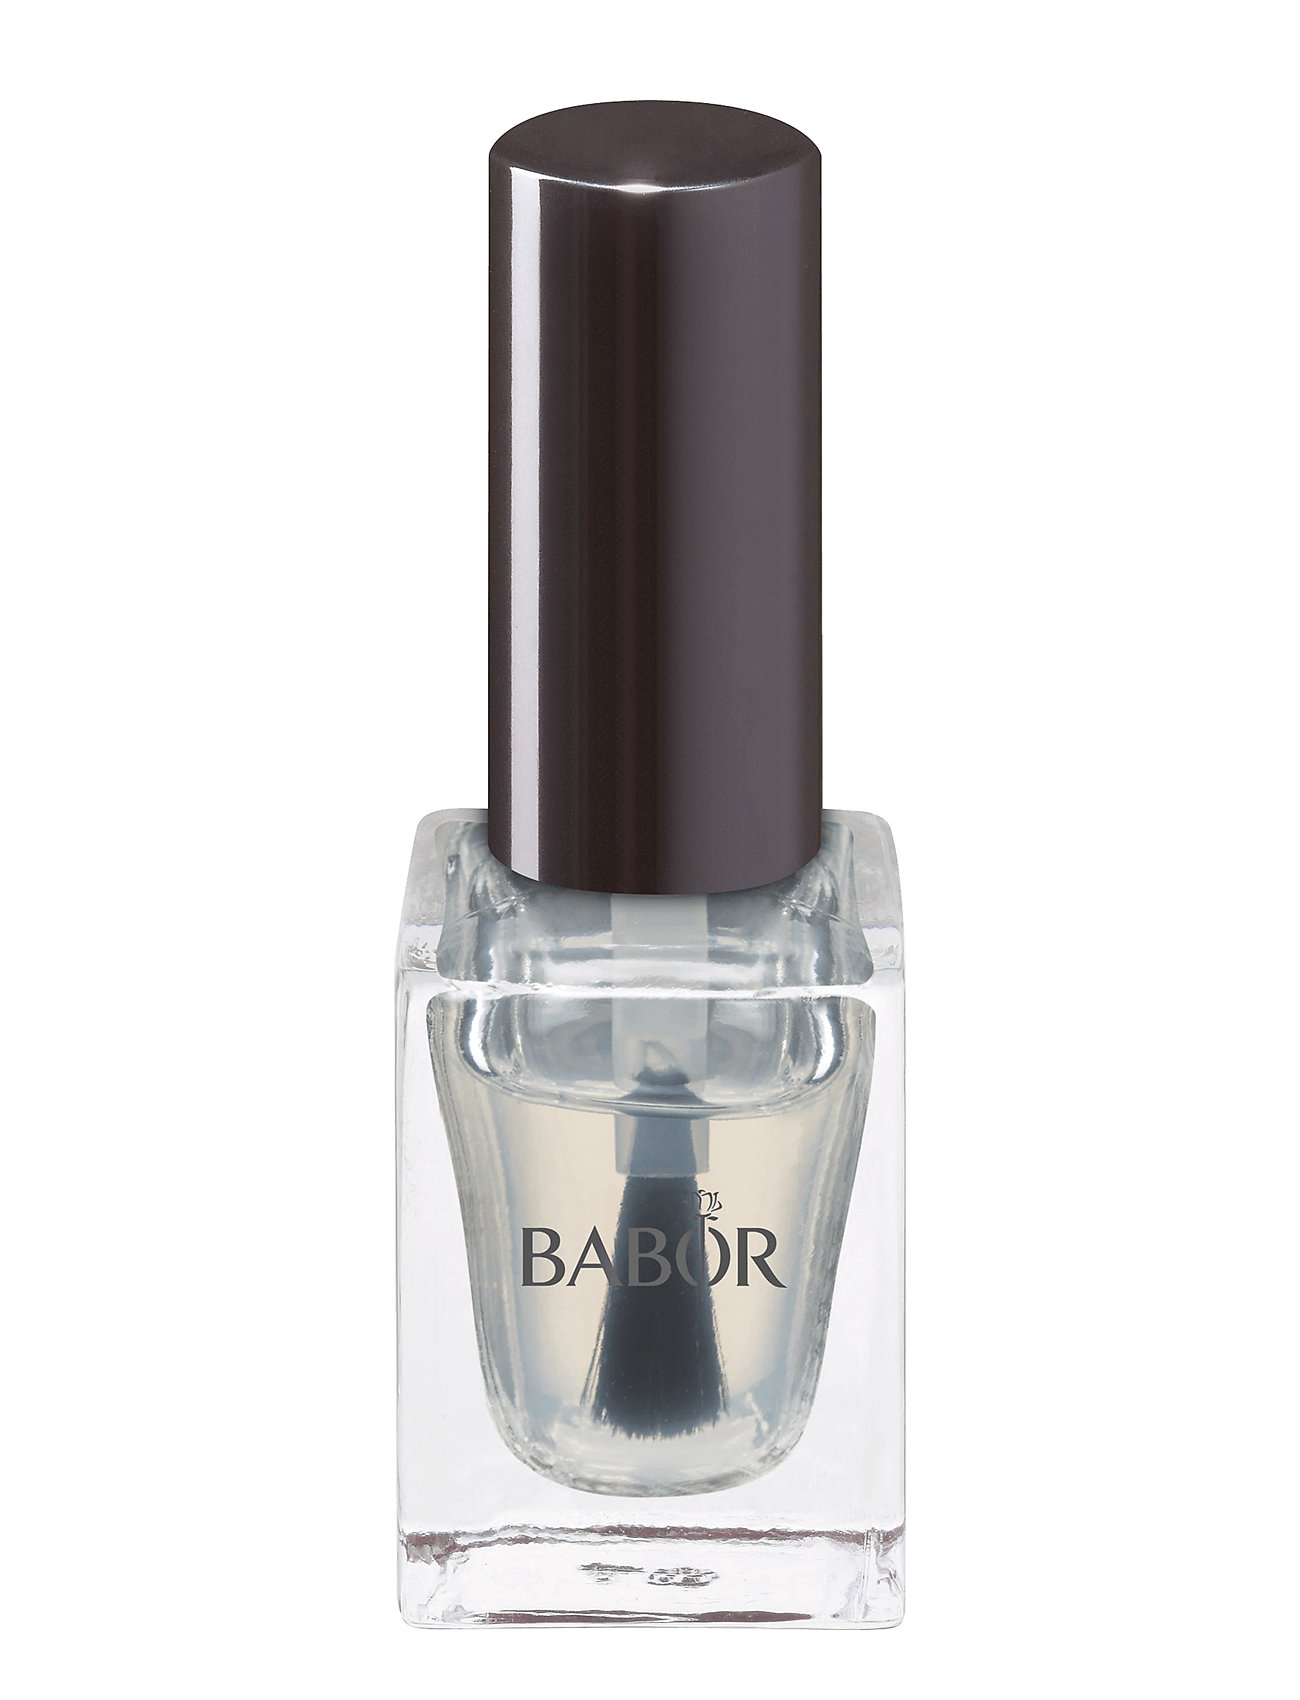 Image of Cuticle Remover Neglepleje Nude Babor (3105946113)